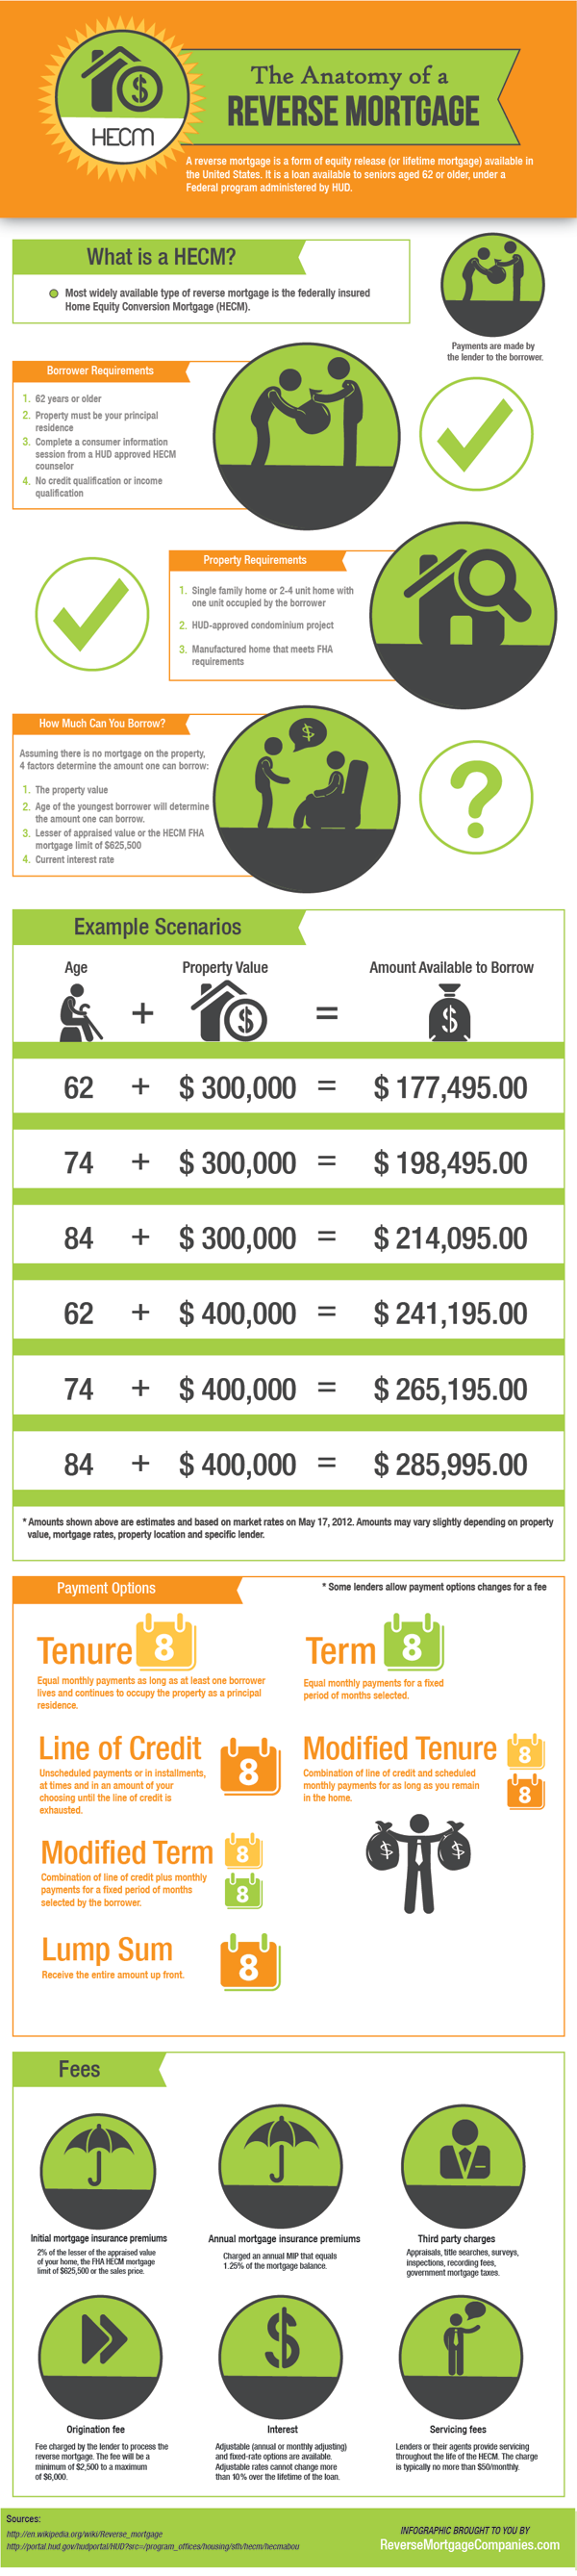 Reverse Mortgage Industry Trends